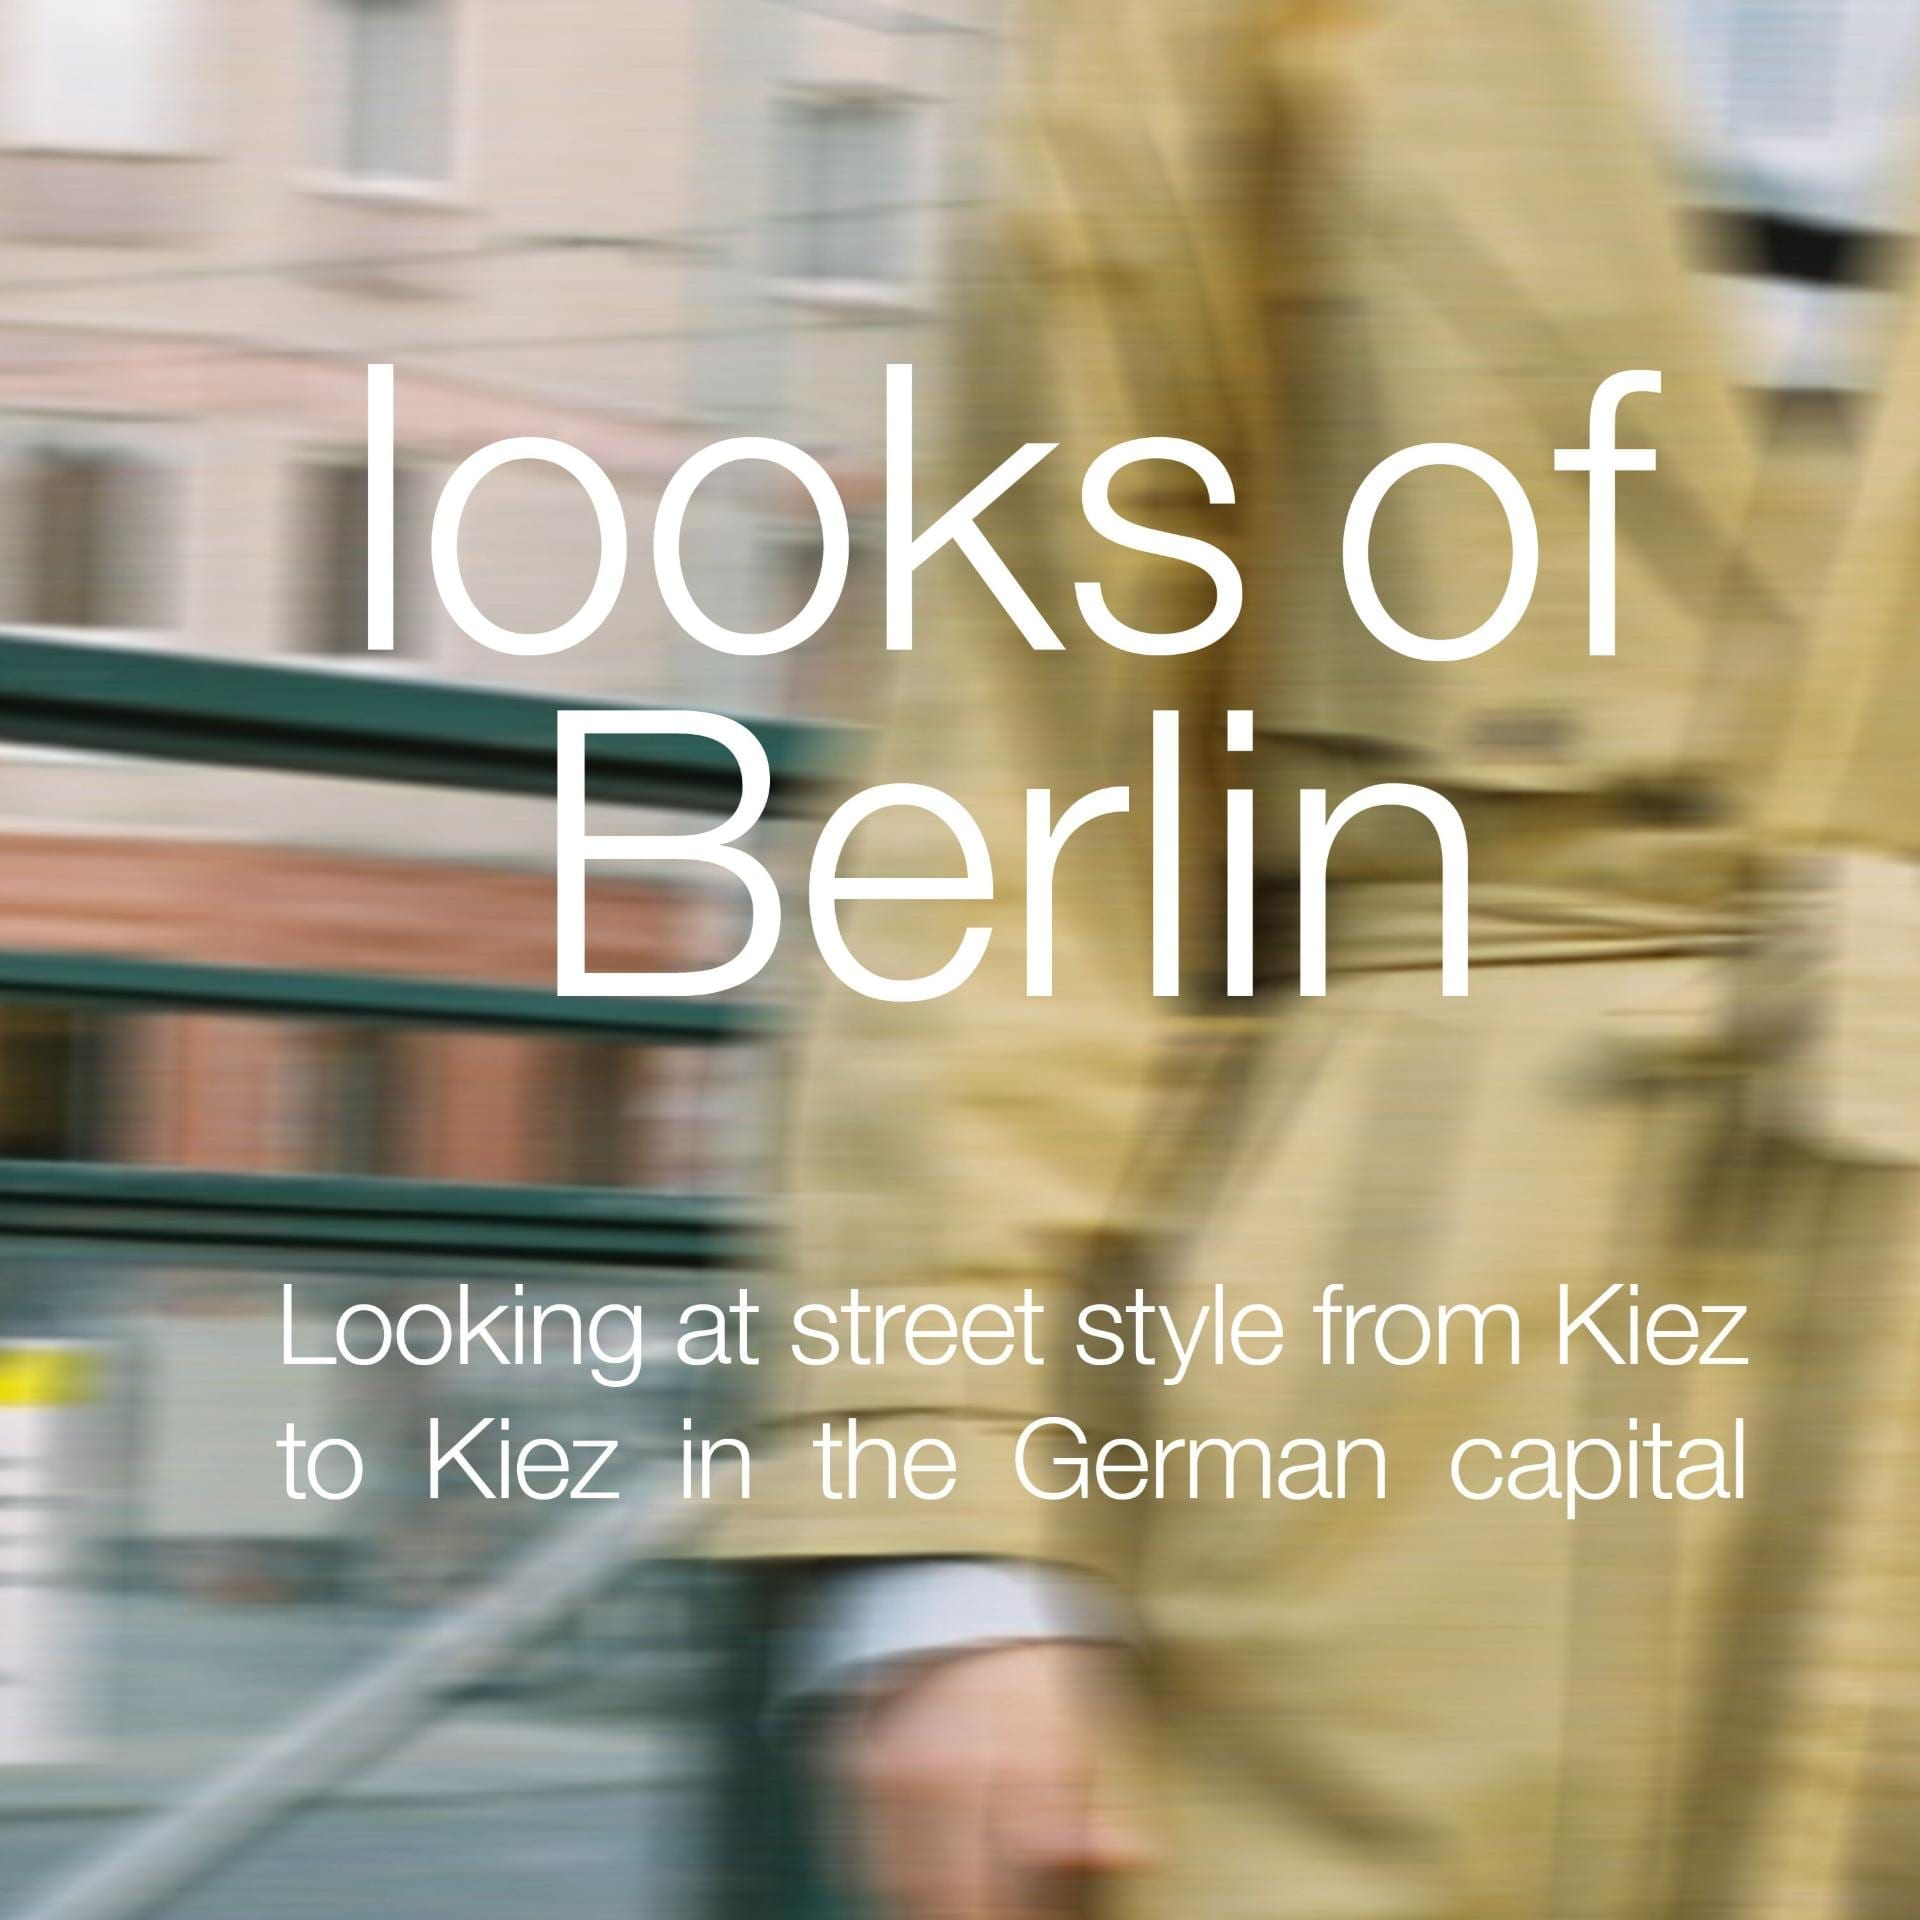 Presenting: Looks of Berlin